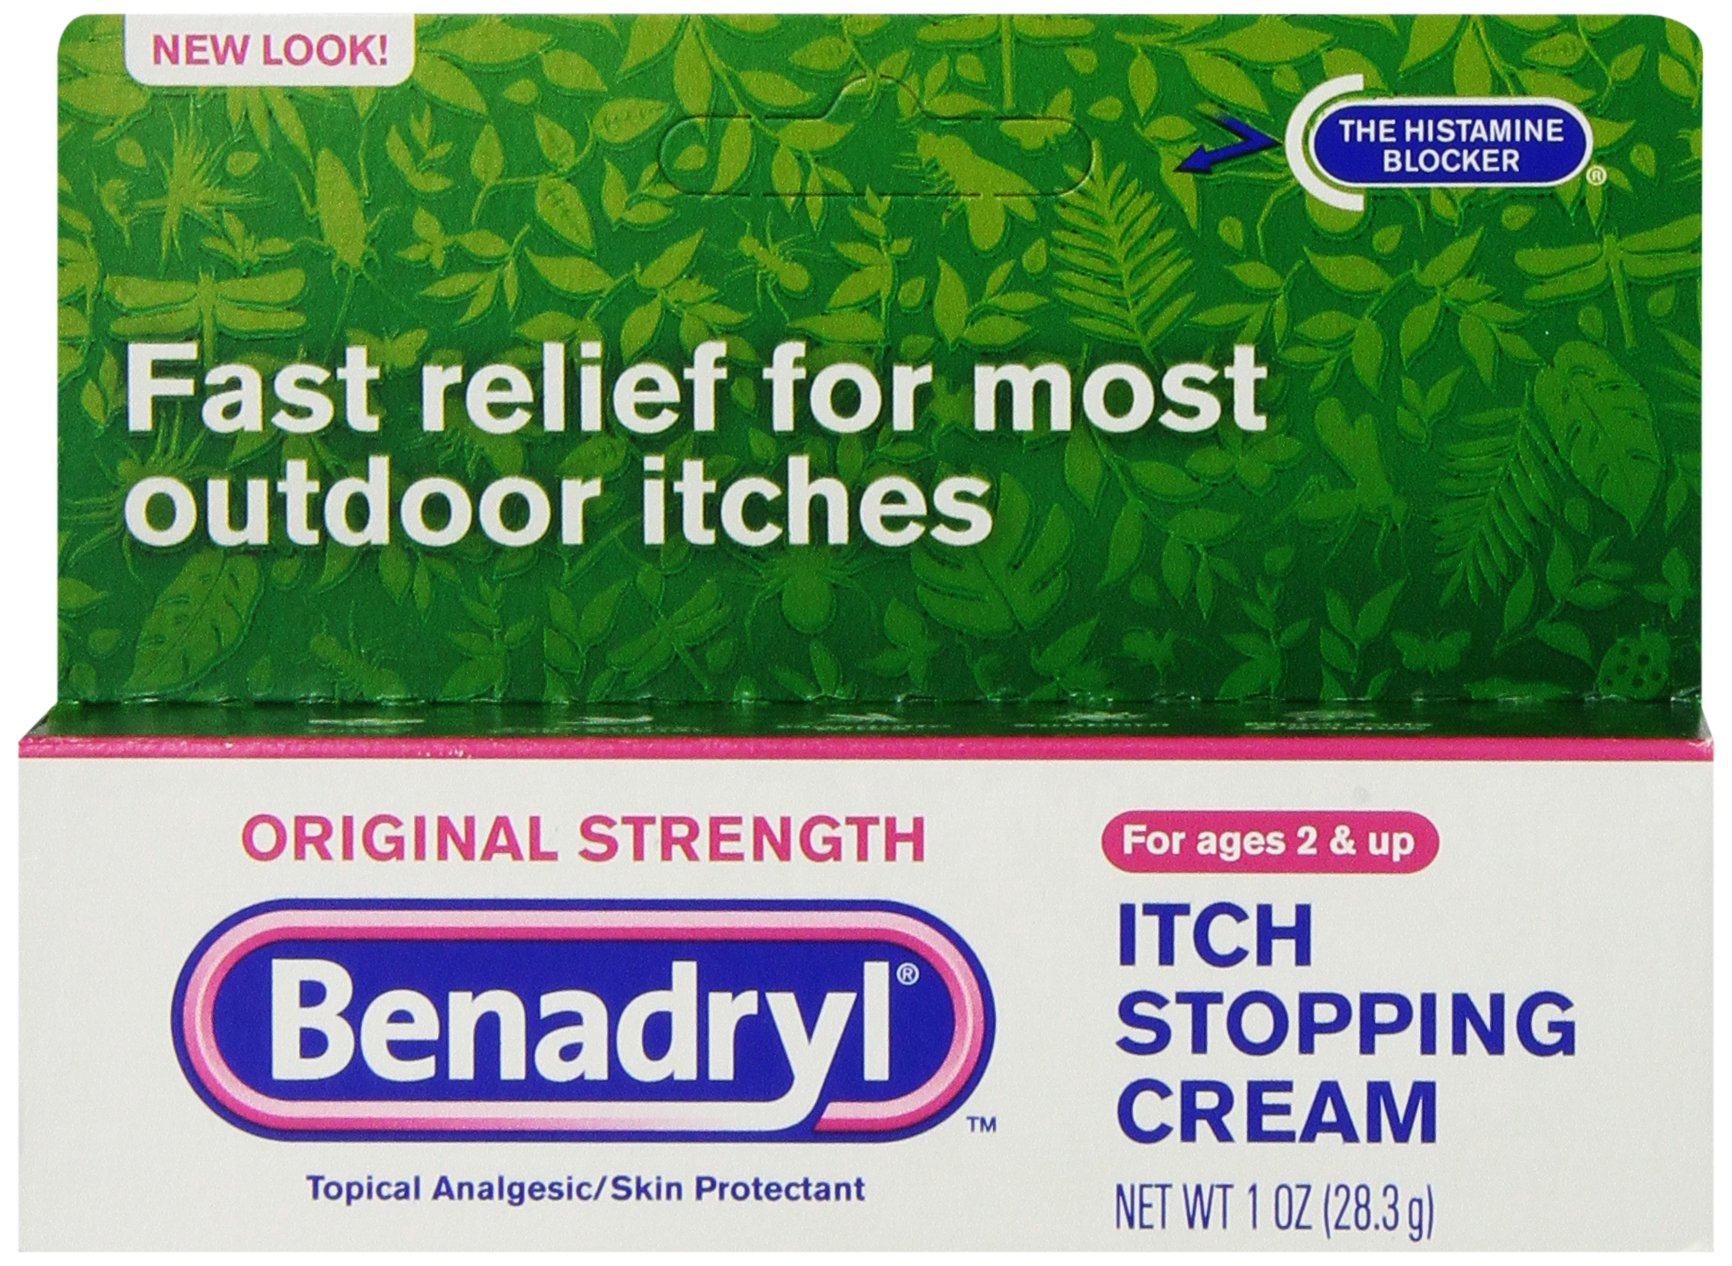 Benadryl Itch Stopping Cream, Original Strength, 1 Ounce (Pack of 6) by Benadryl